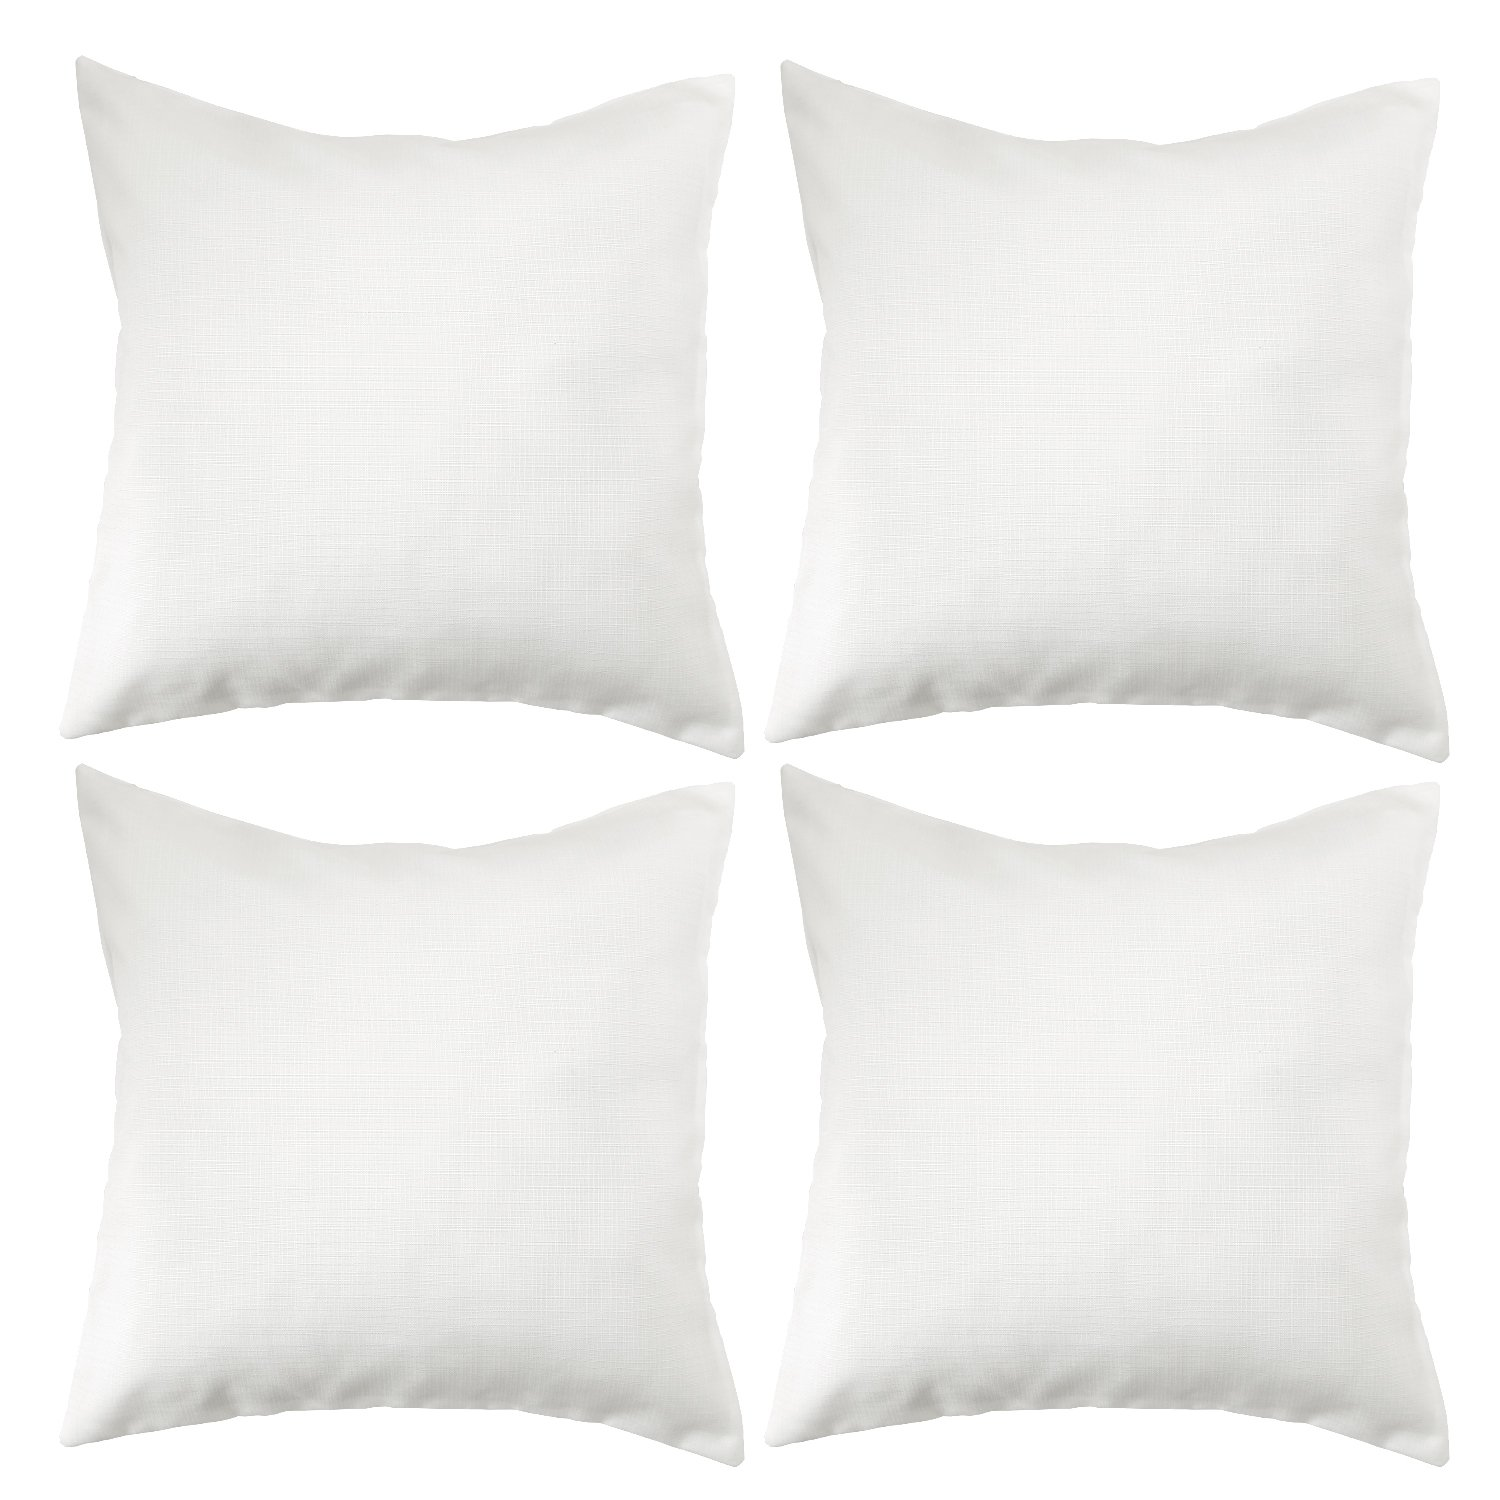 Deconovo Soft Cushion Covers Faux Linen Pillow Covers Throw Pillow Cases for Sofa 18x18 Inch Off White Set of 4 (CASE ONLY, NO Insert)